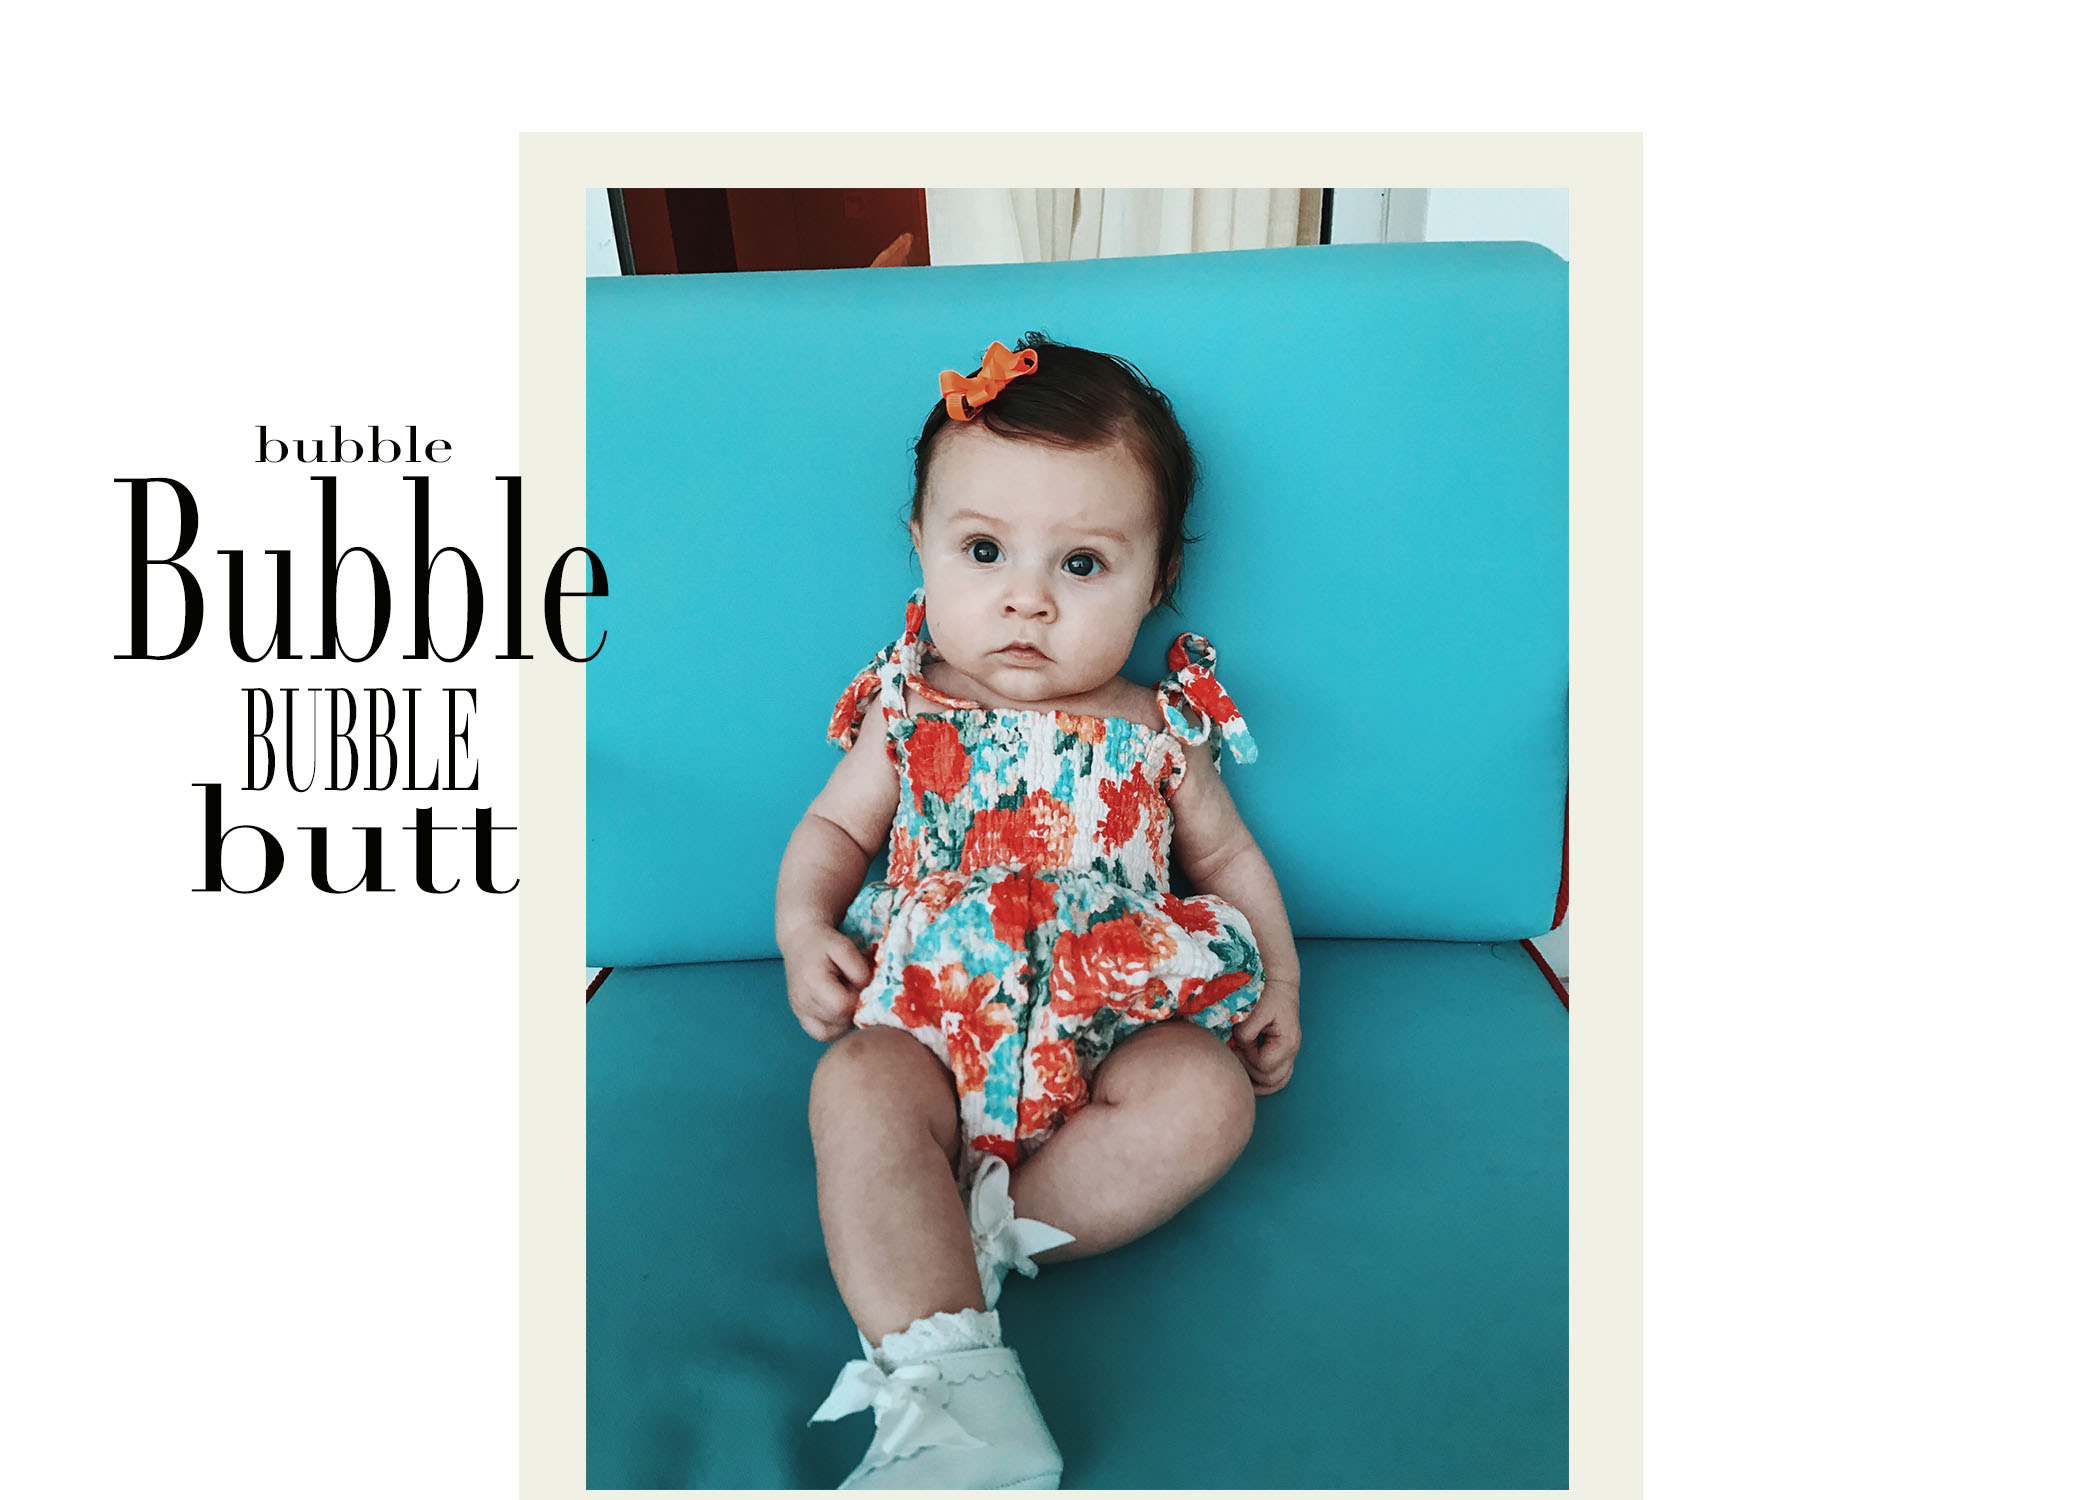 Bubble Suits Make Baby Legs Even Cuter. Period. - I'm a big believer in dressing a baby like a baby. There's this small window of time you have to show off those chunky leg rolls, cute little butts, and put those teeny feet on display! While I wish it were appropriate to wear an adult bubble suit, I think there's nothing more